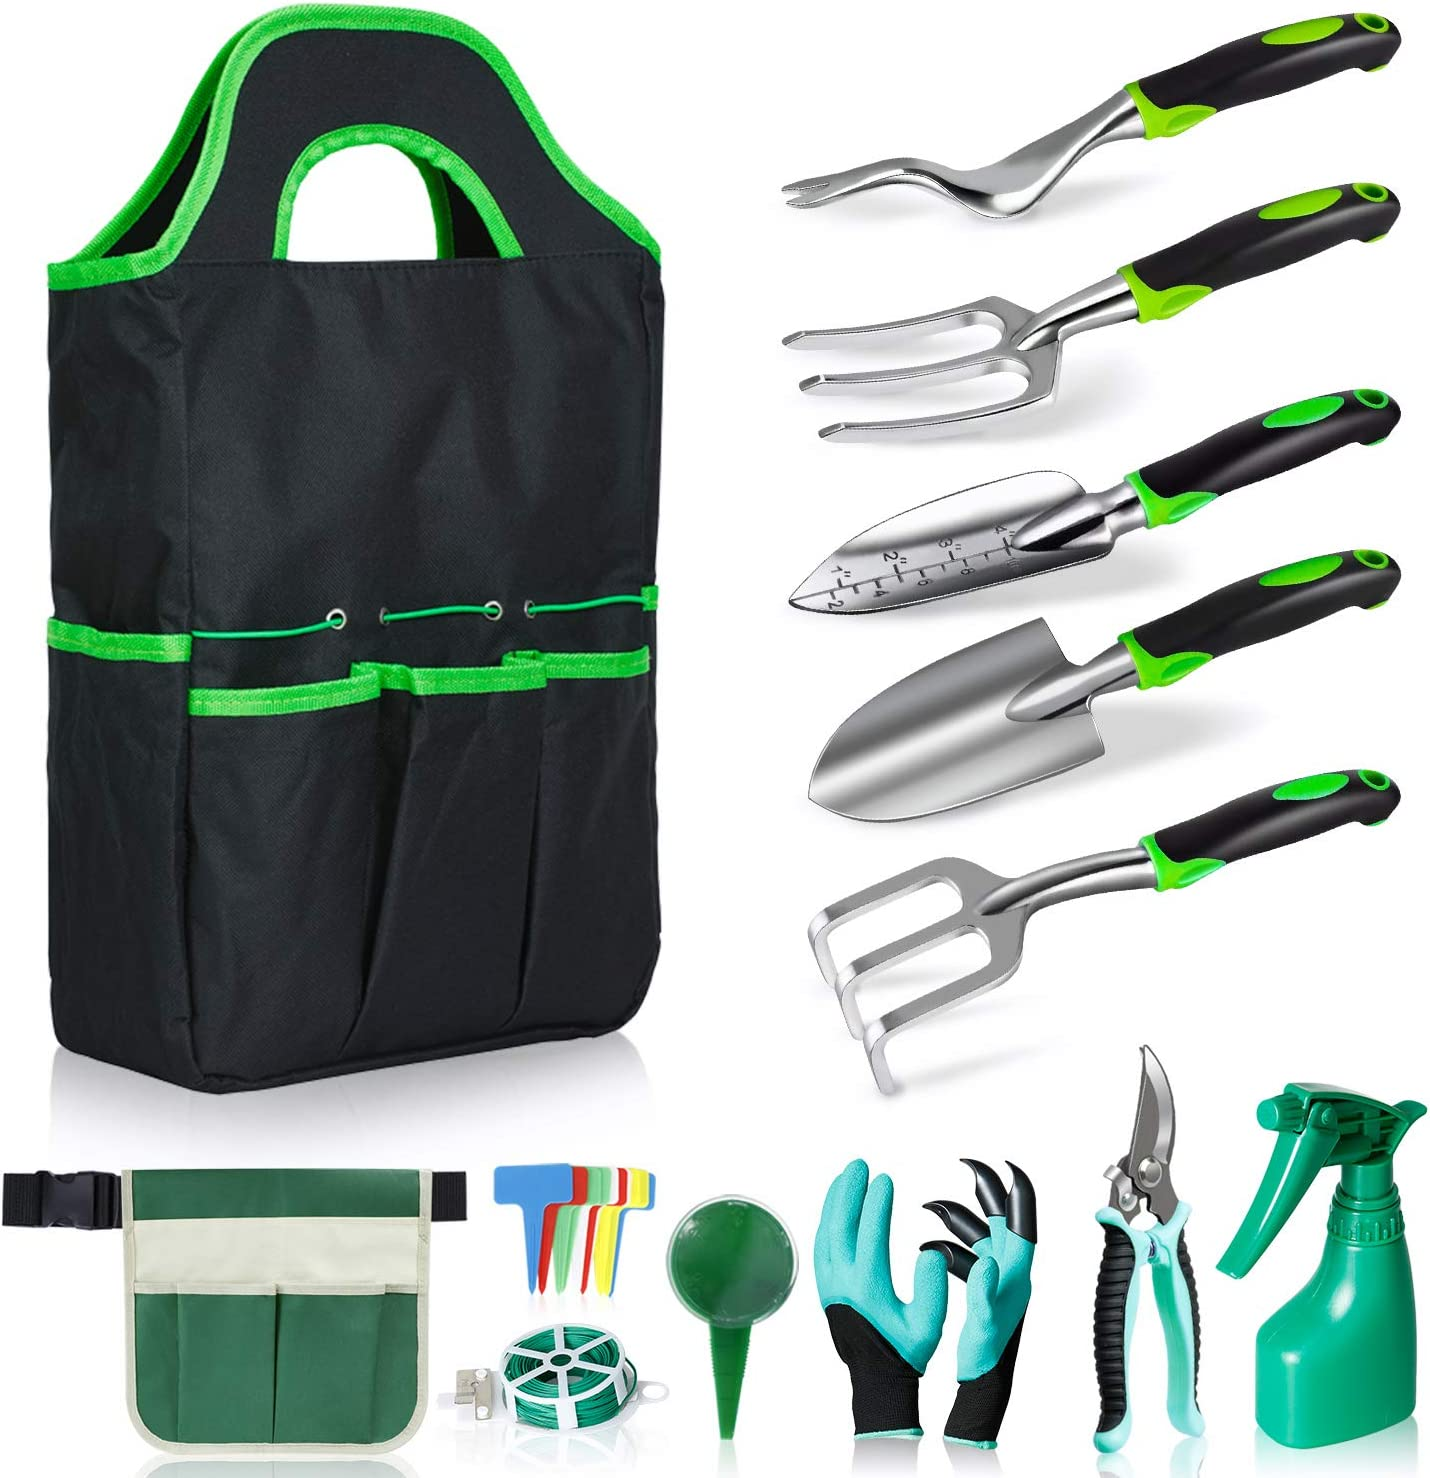 Tmalltide Garden Tools Set, 18 pcs Perfect Gardening Tools Gift for Women, with Garden Tool Belt and Standable Tote